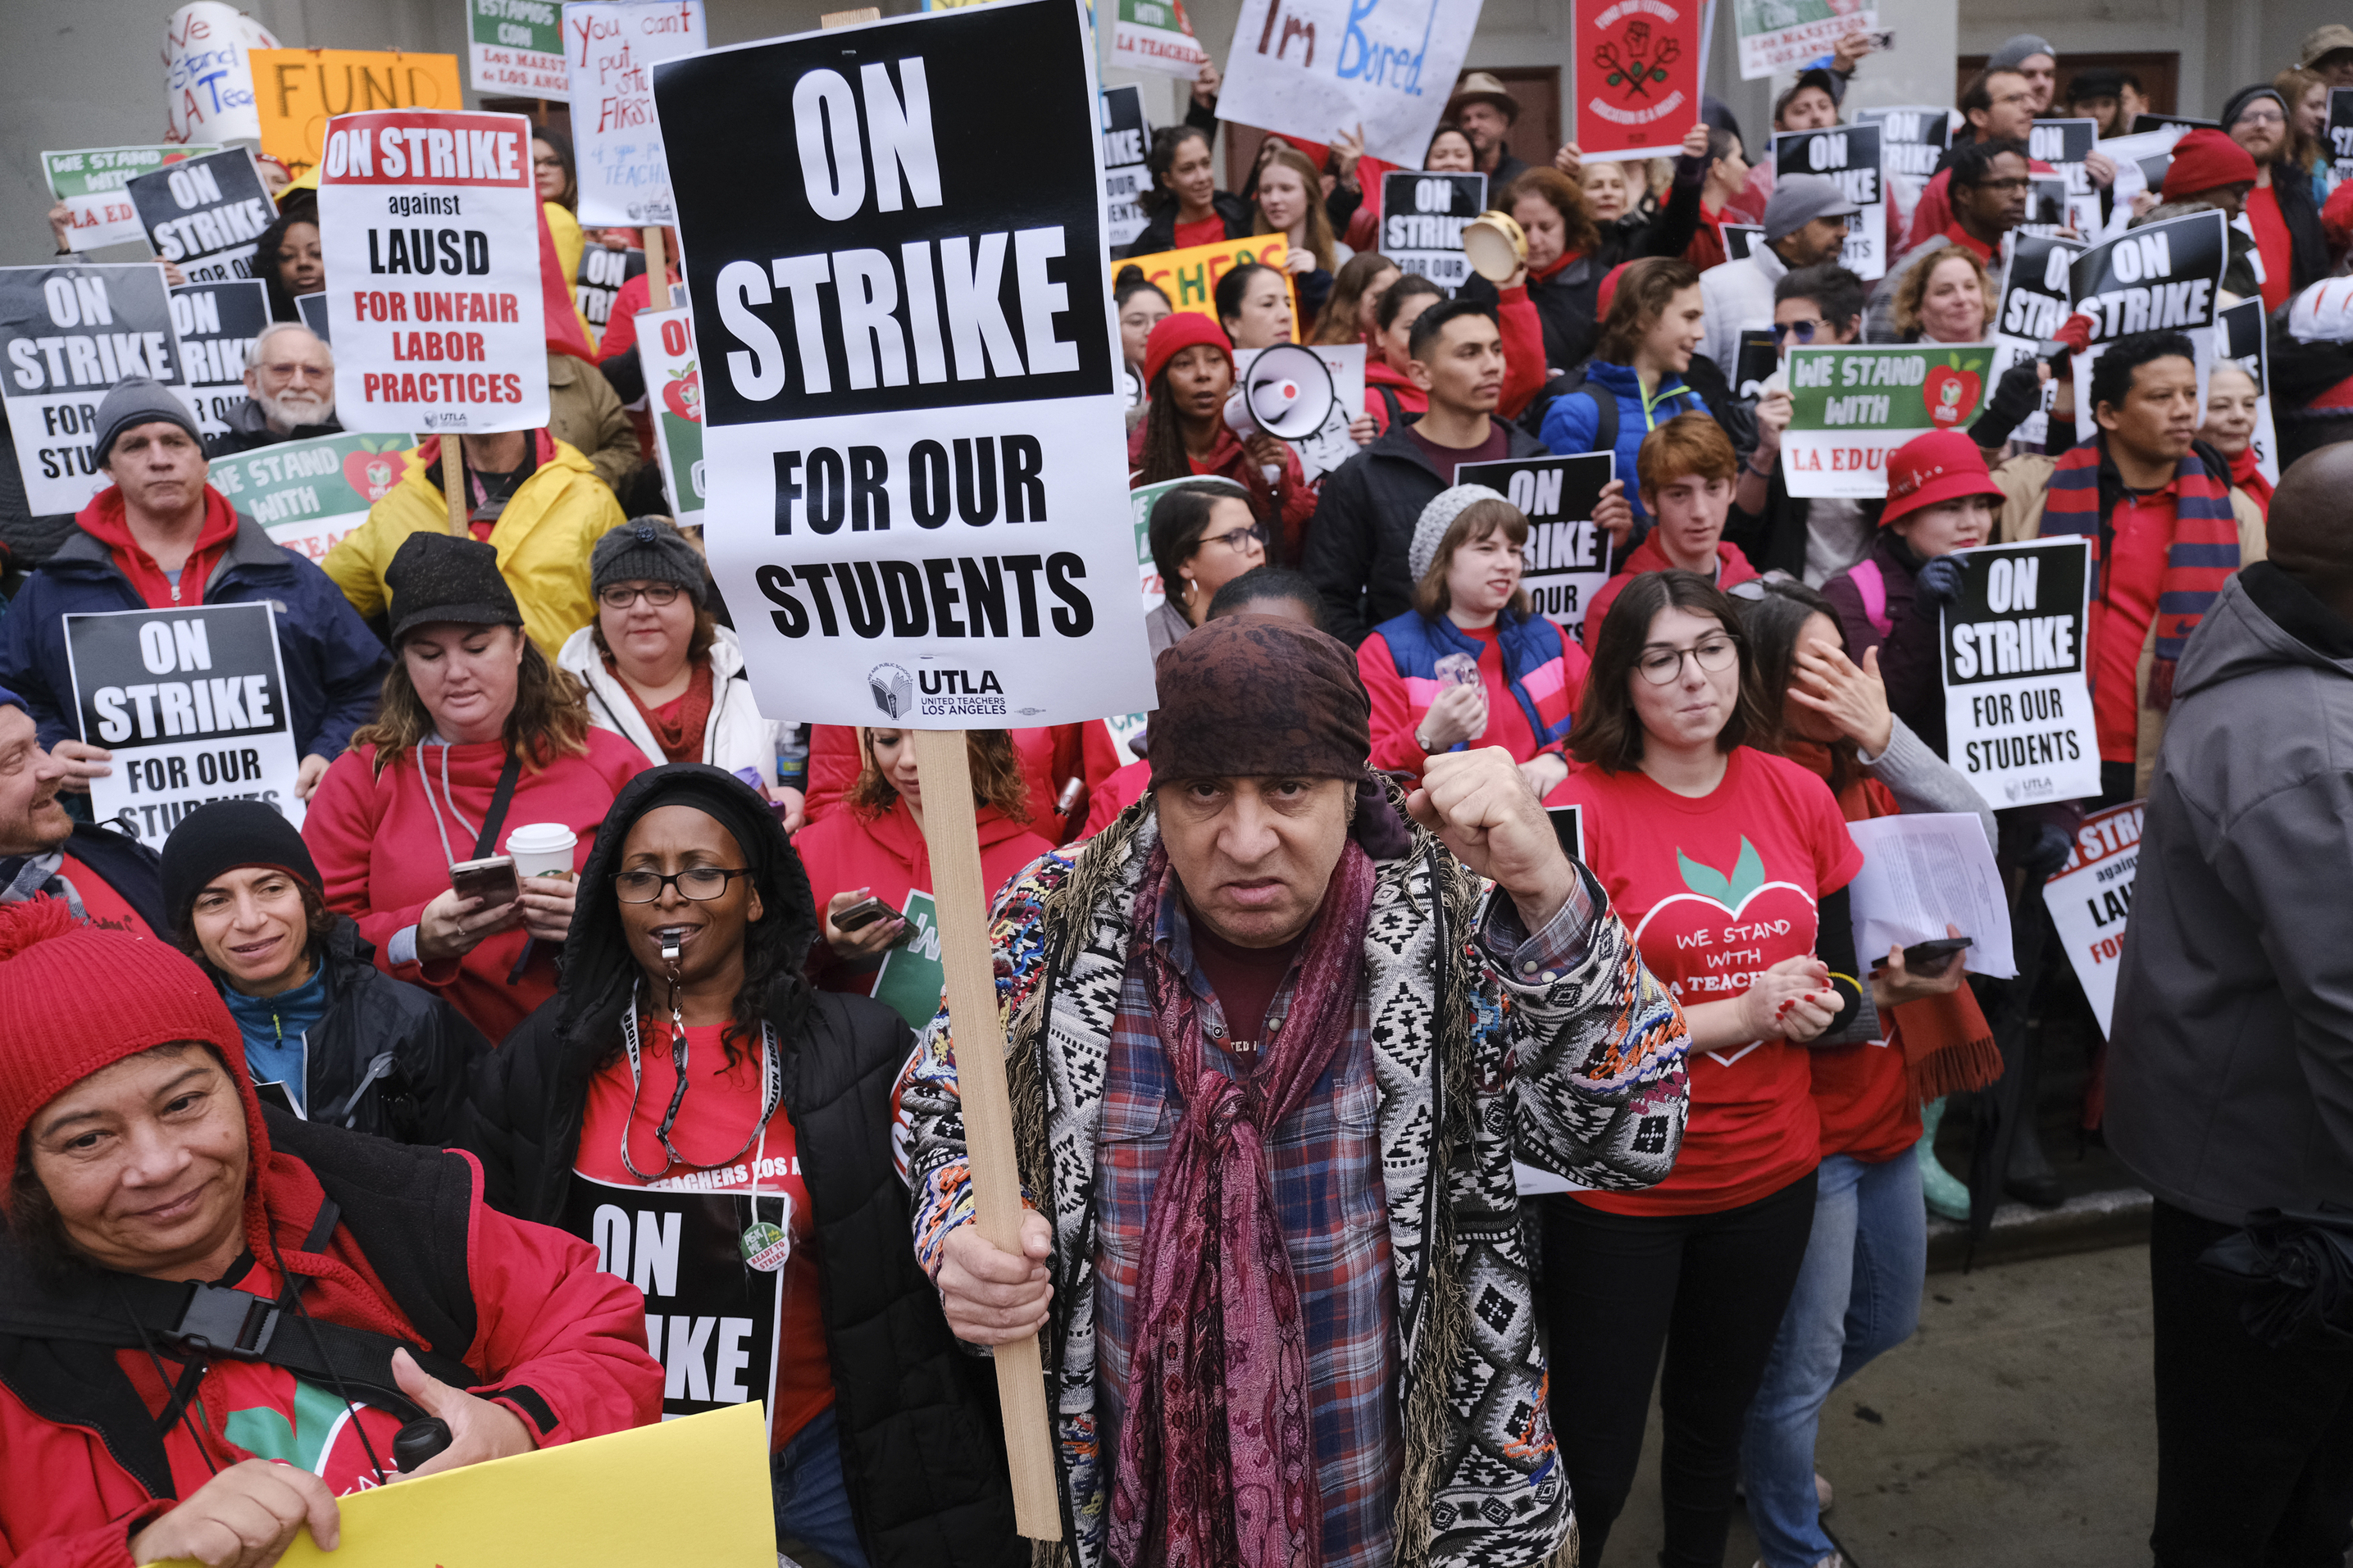 Actor, musician and activist, Steven Van Zandt, center, supports striking teachers on the picket in front of Hamilton High School in Los Angeles on Wednesday, Jan. 16, 2019. School administrators urged the union to resume bargaining as tens of thousands of teachers planned to walk picket lines for a third day Wednesday. (AP Photo/Richard Vogel)